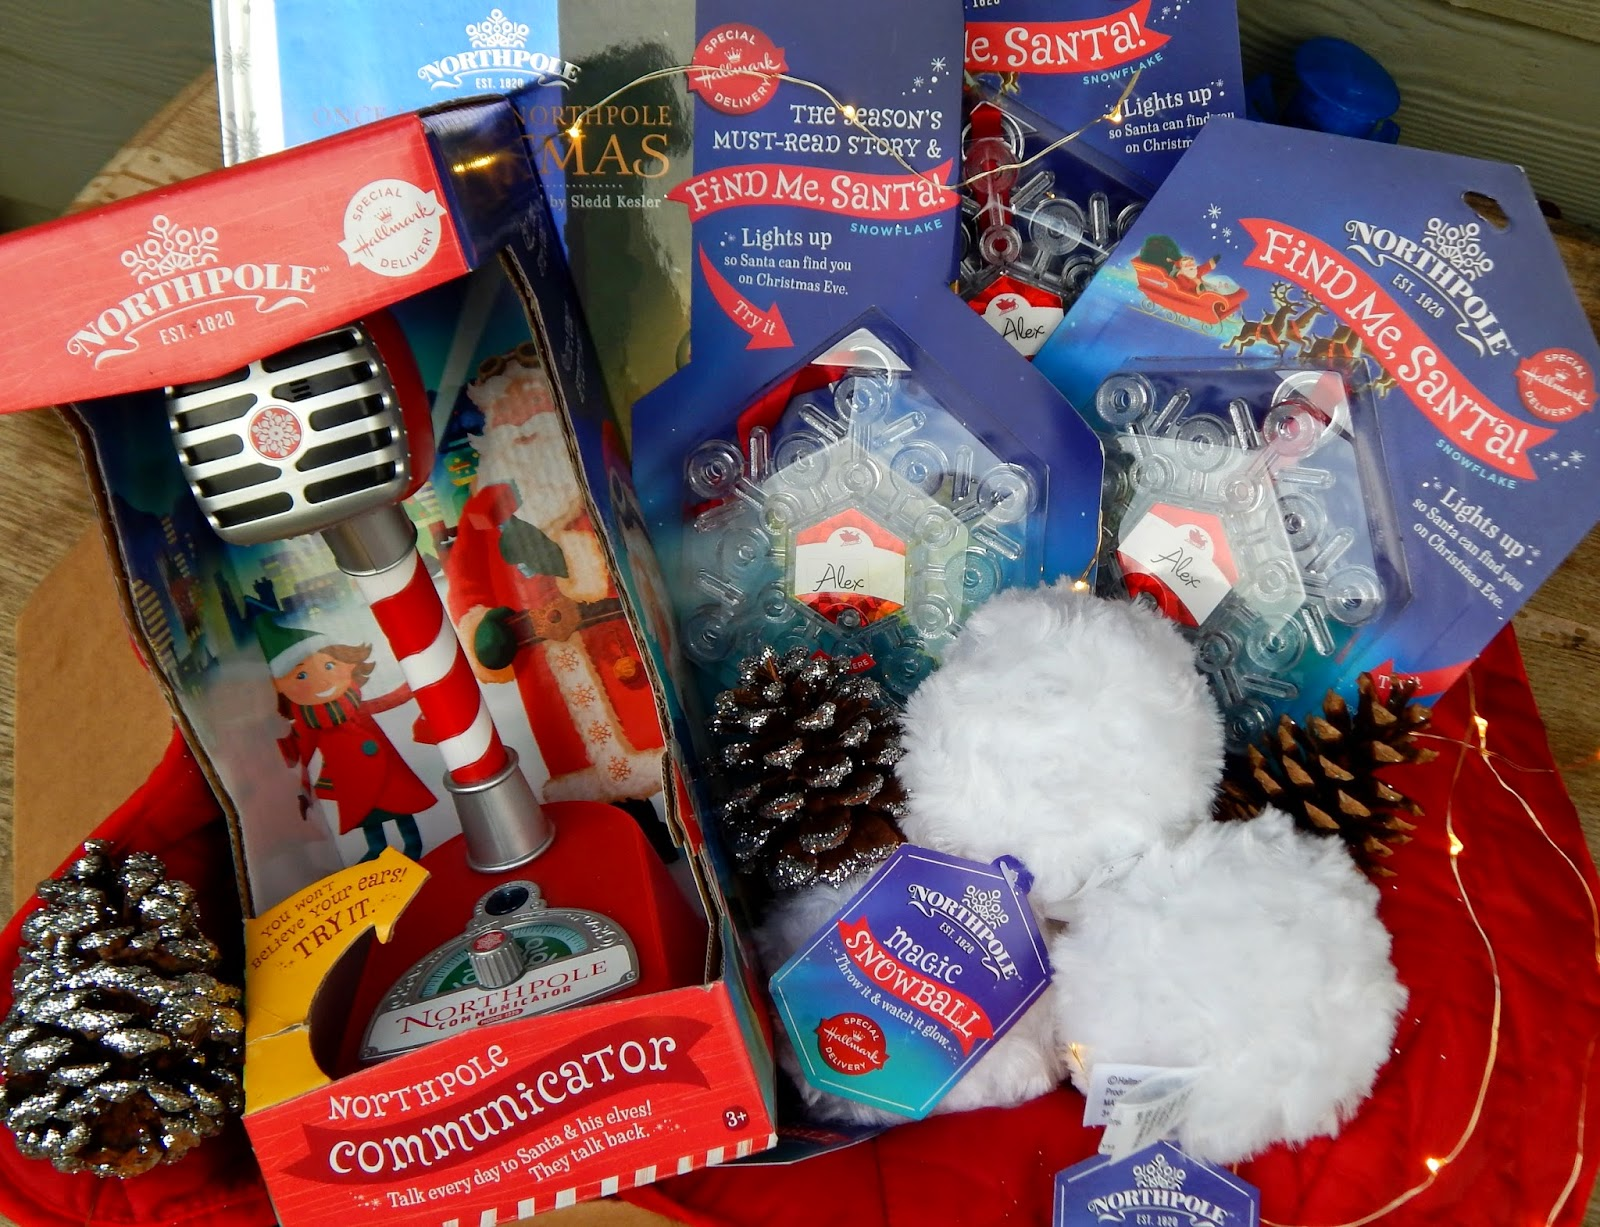 7 ways to show your kids you care this holiday season #northpolefun #shop #cbias